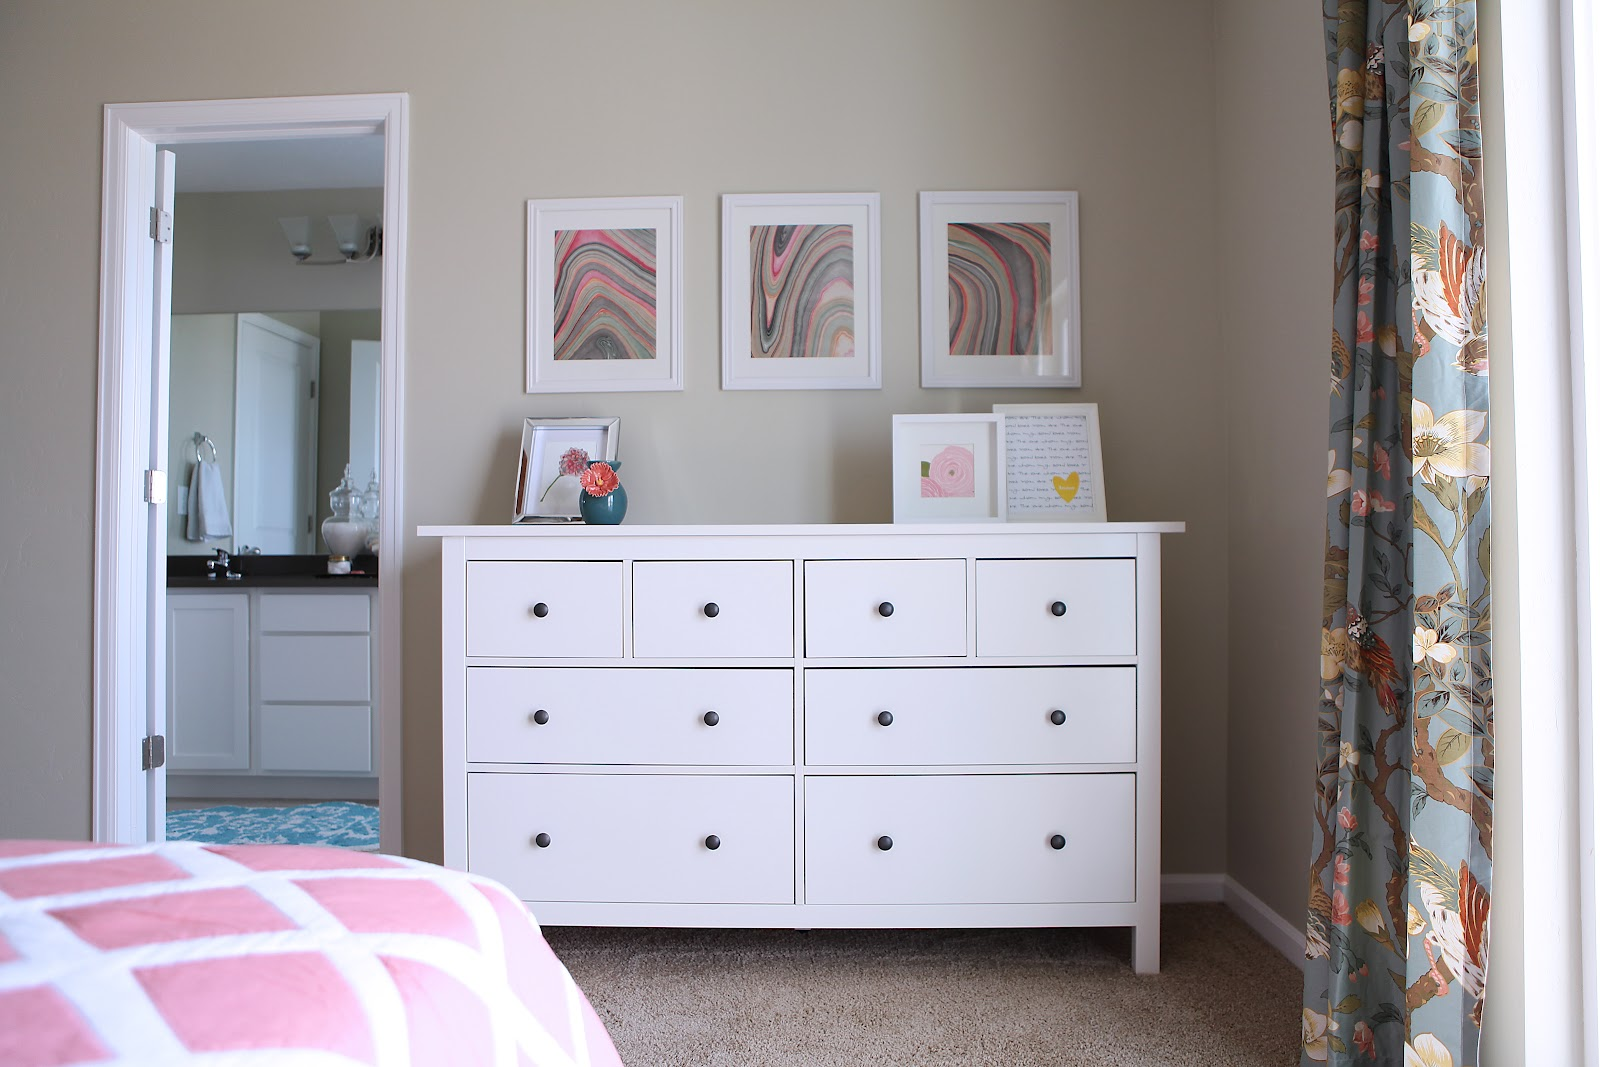 ikea-white-hemnes-bedroom-furniture-3